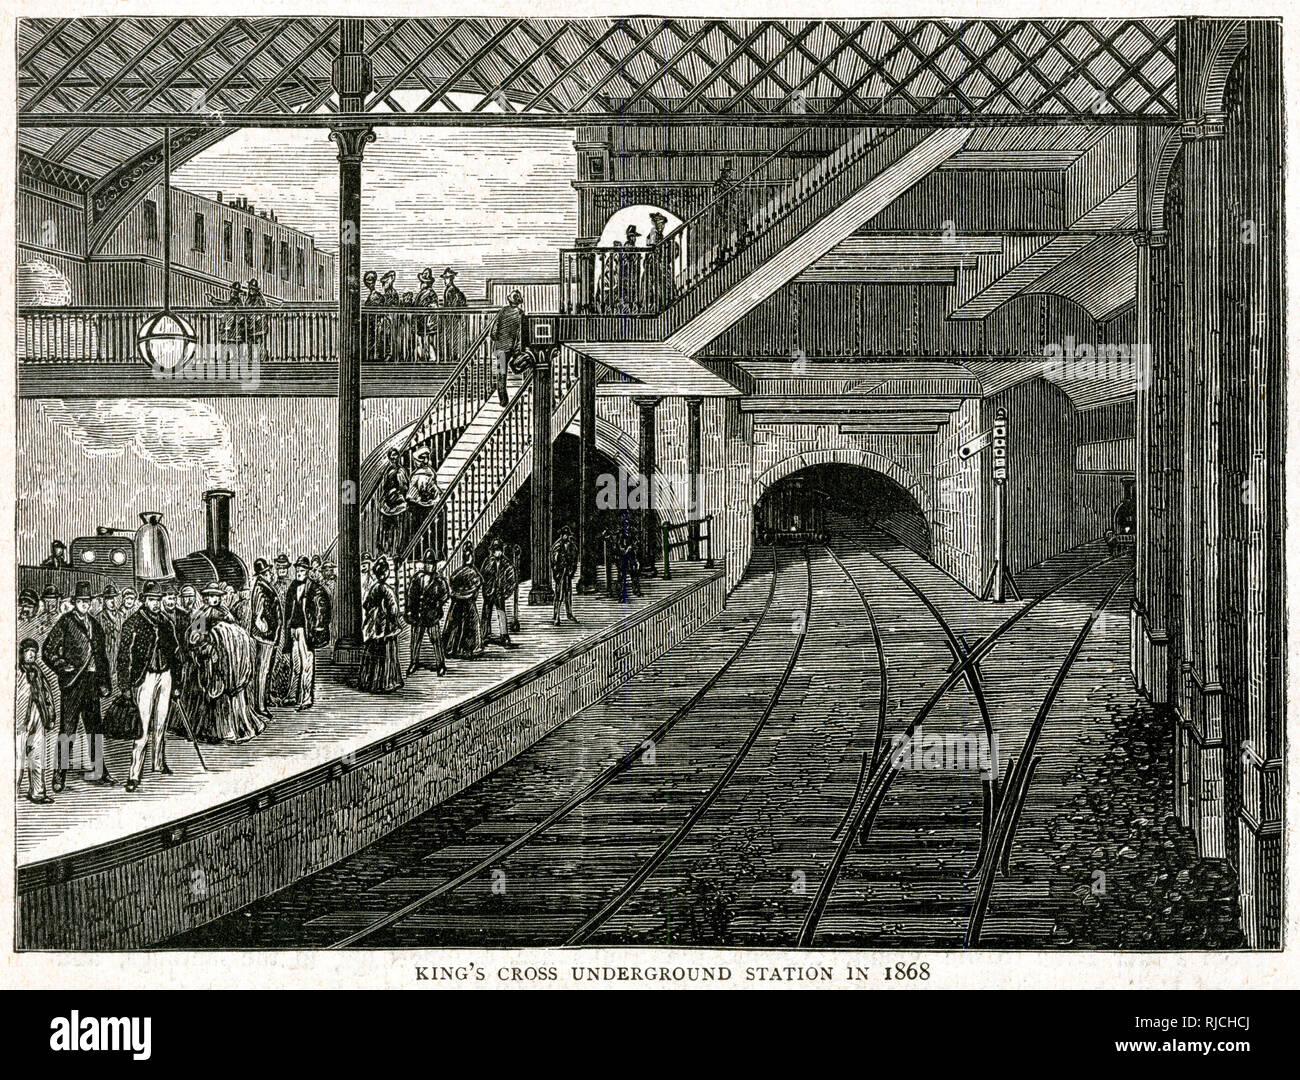 Junction of the Midland, Great Northern, and Metropolitan railways at King's Cross. Part of new work being carried out between King's Cross and Farringdon Road in 1868. - Stock Image